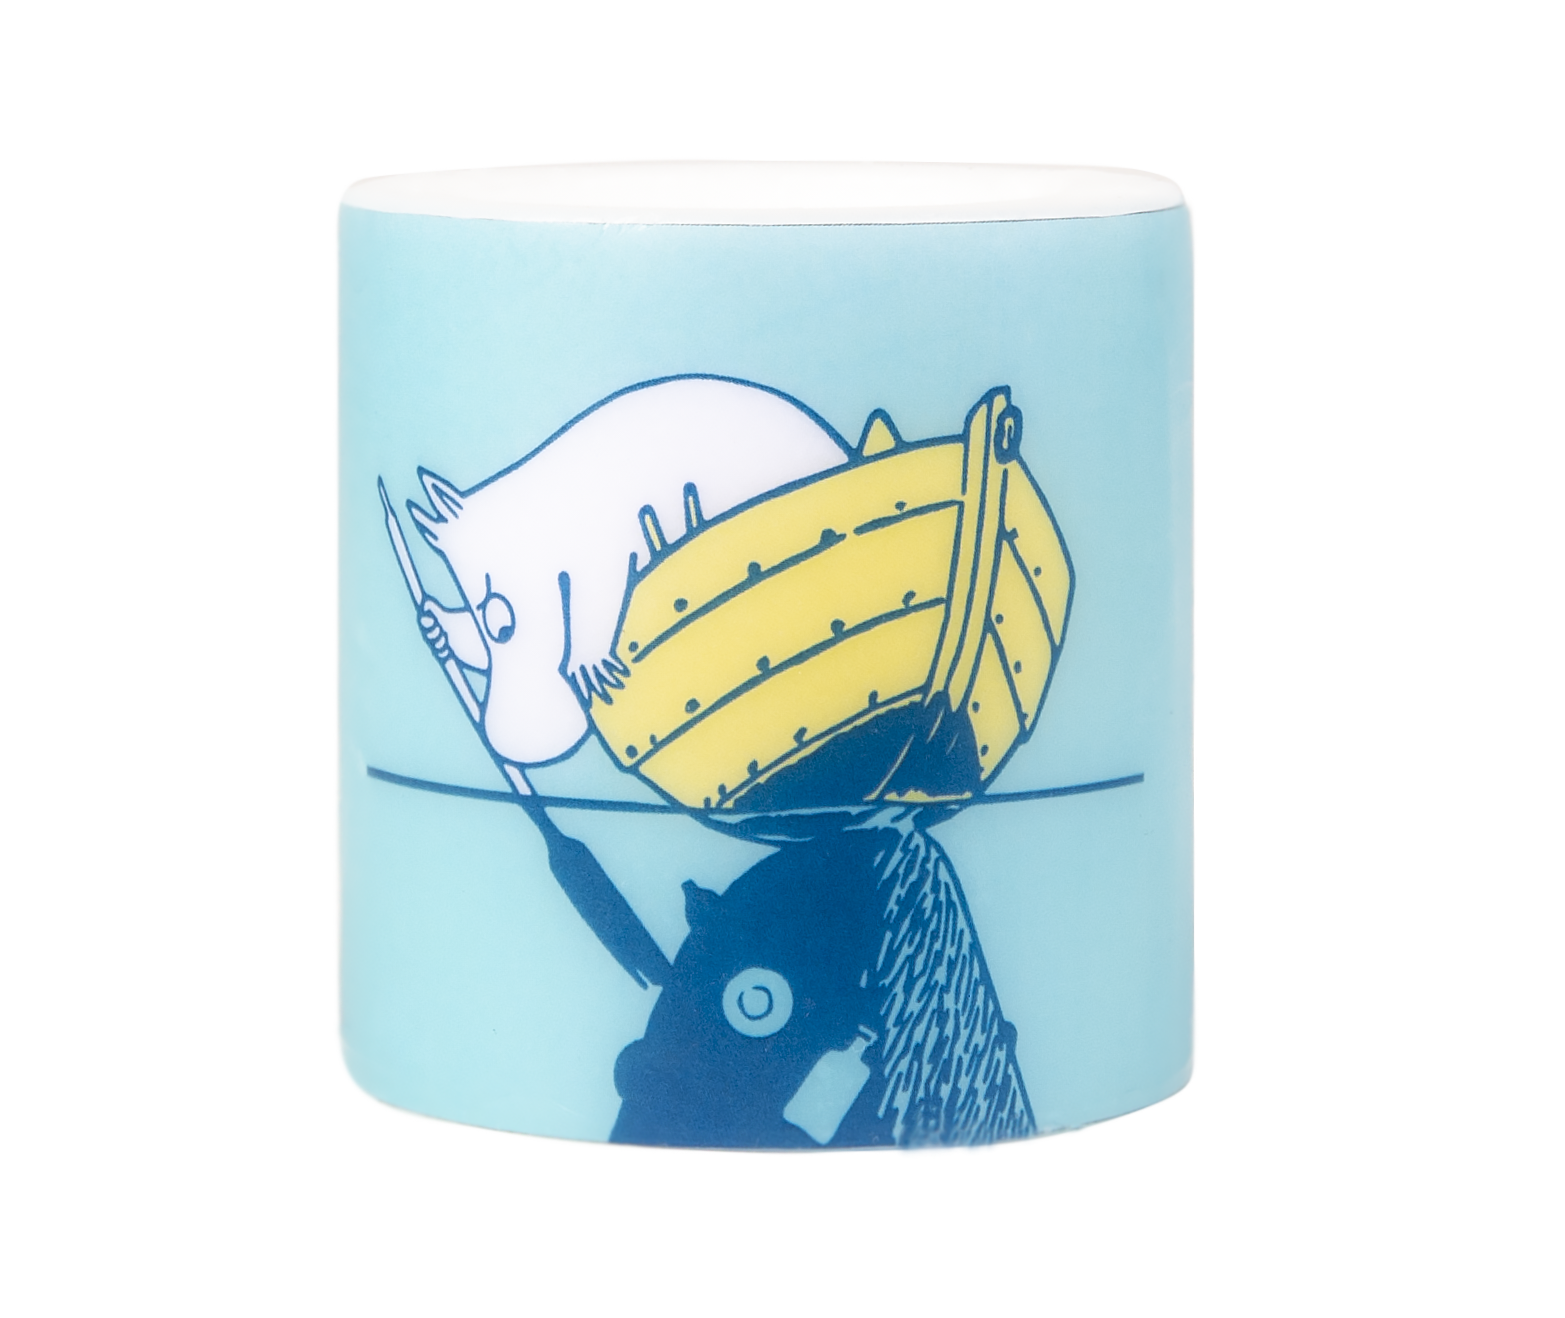 Muurla Moomin #OURSEA candle 8 cm